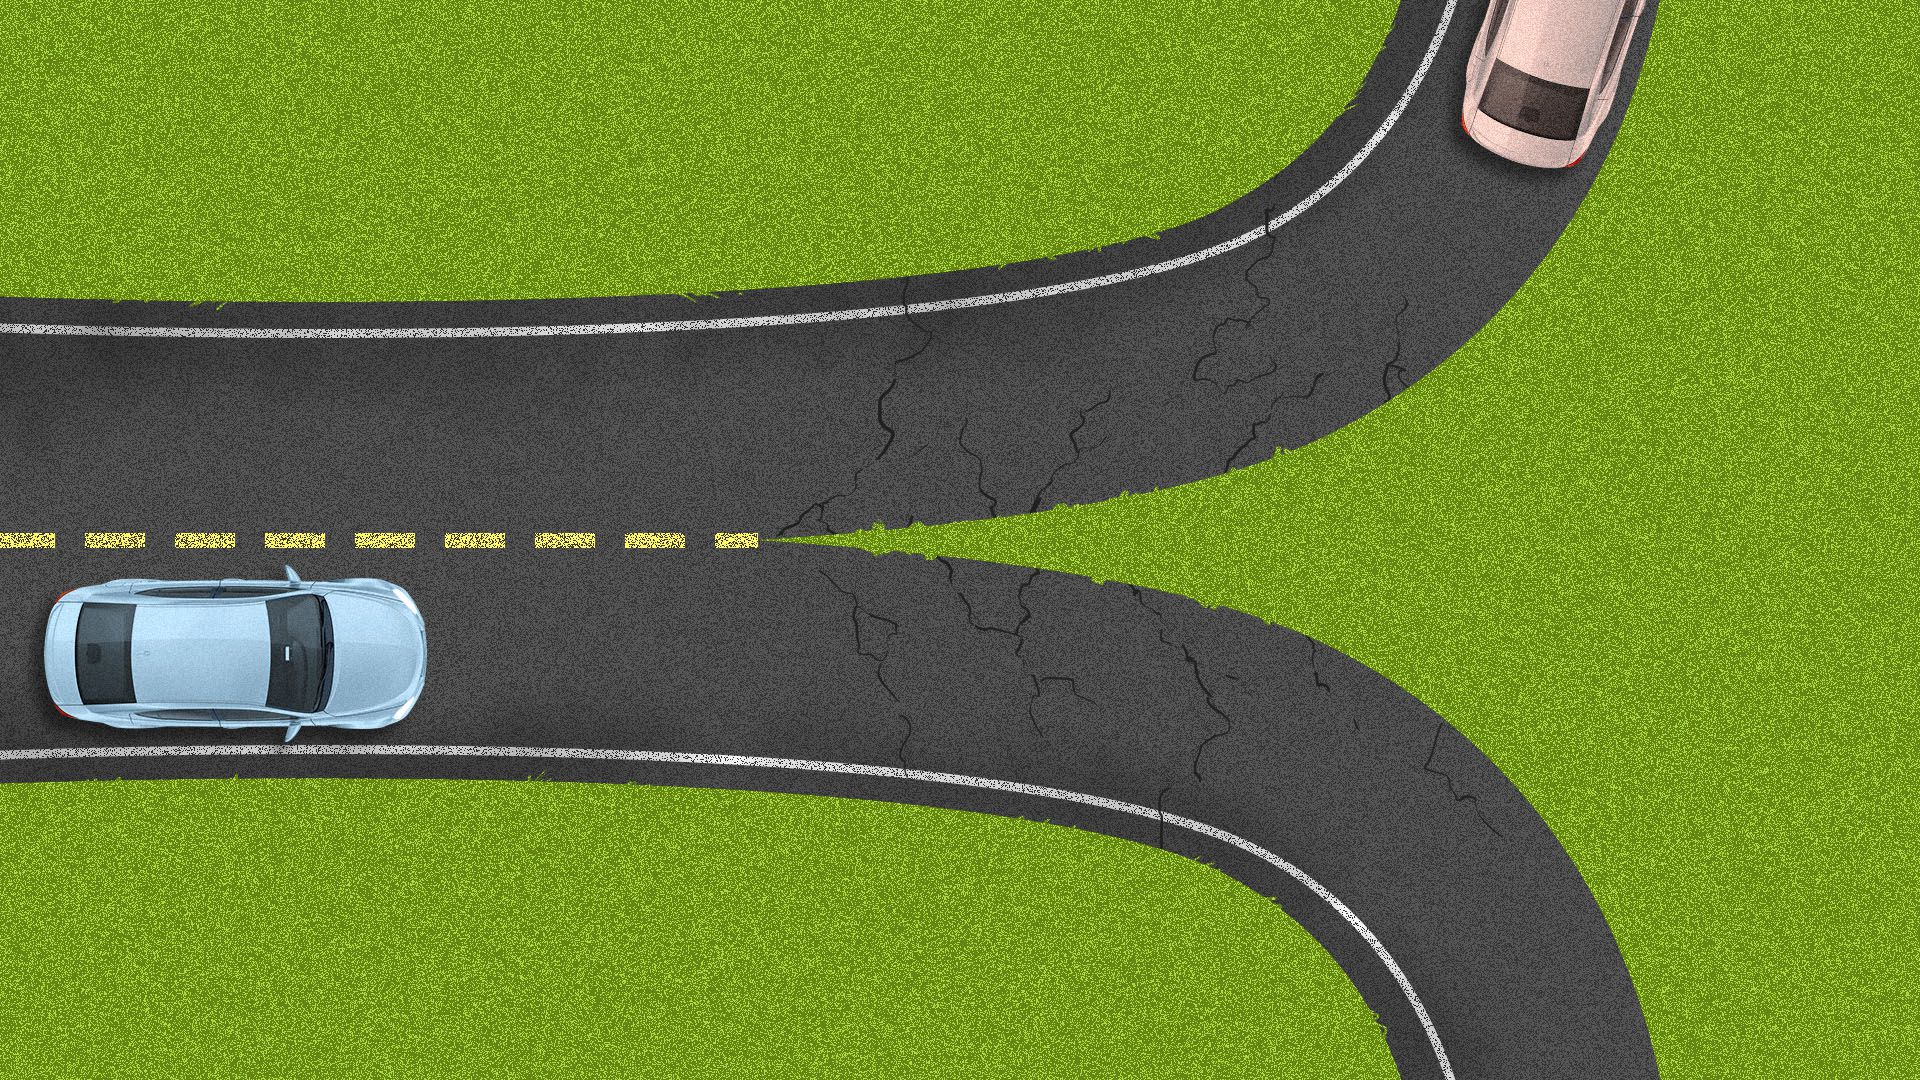 Illustration of a road with two cars on it splitting down the middle into two directions.